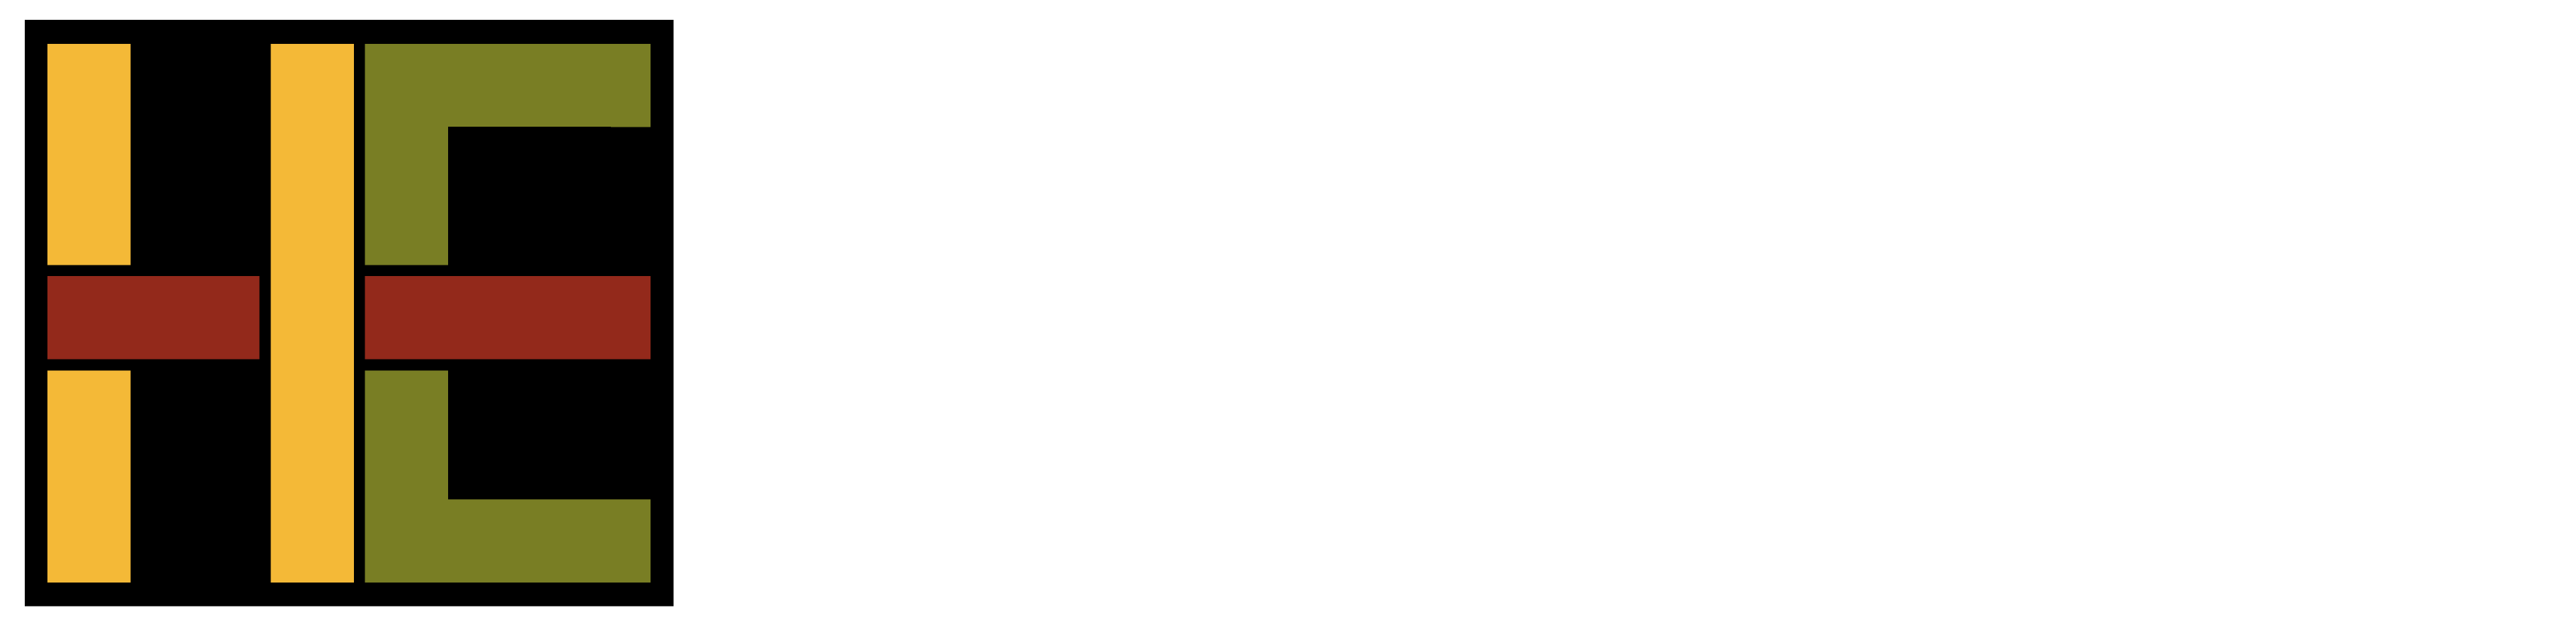 Harvey Economics